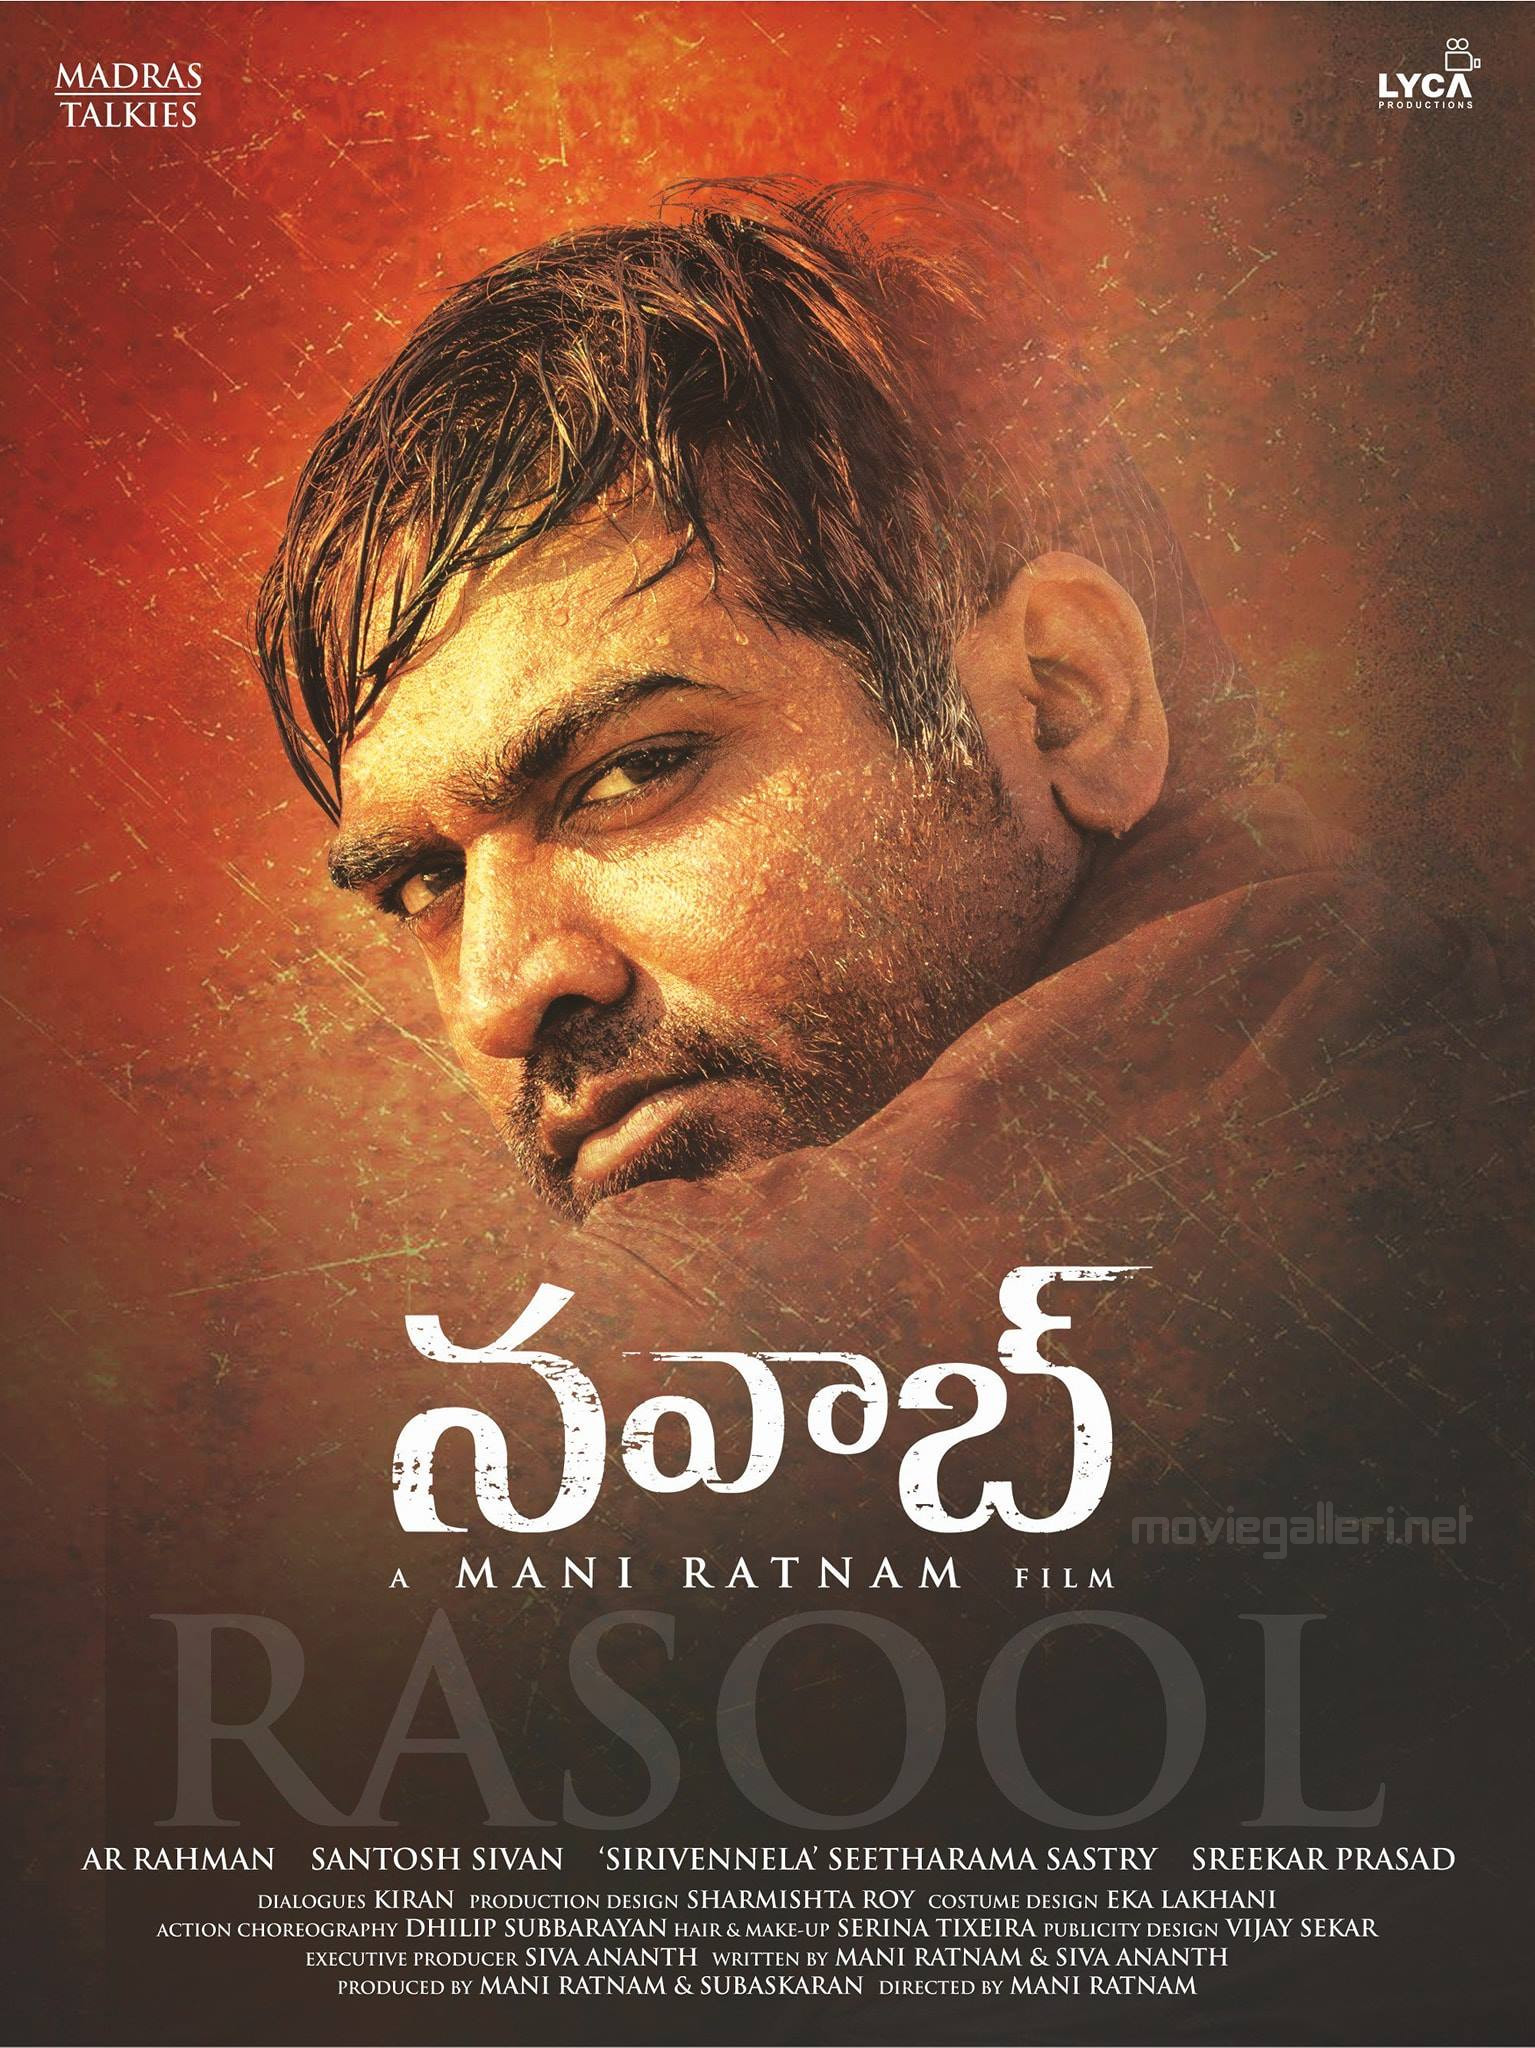 Actor Vijay Sethupathi as Rasool in Nawab Movie Poster HD